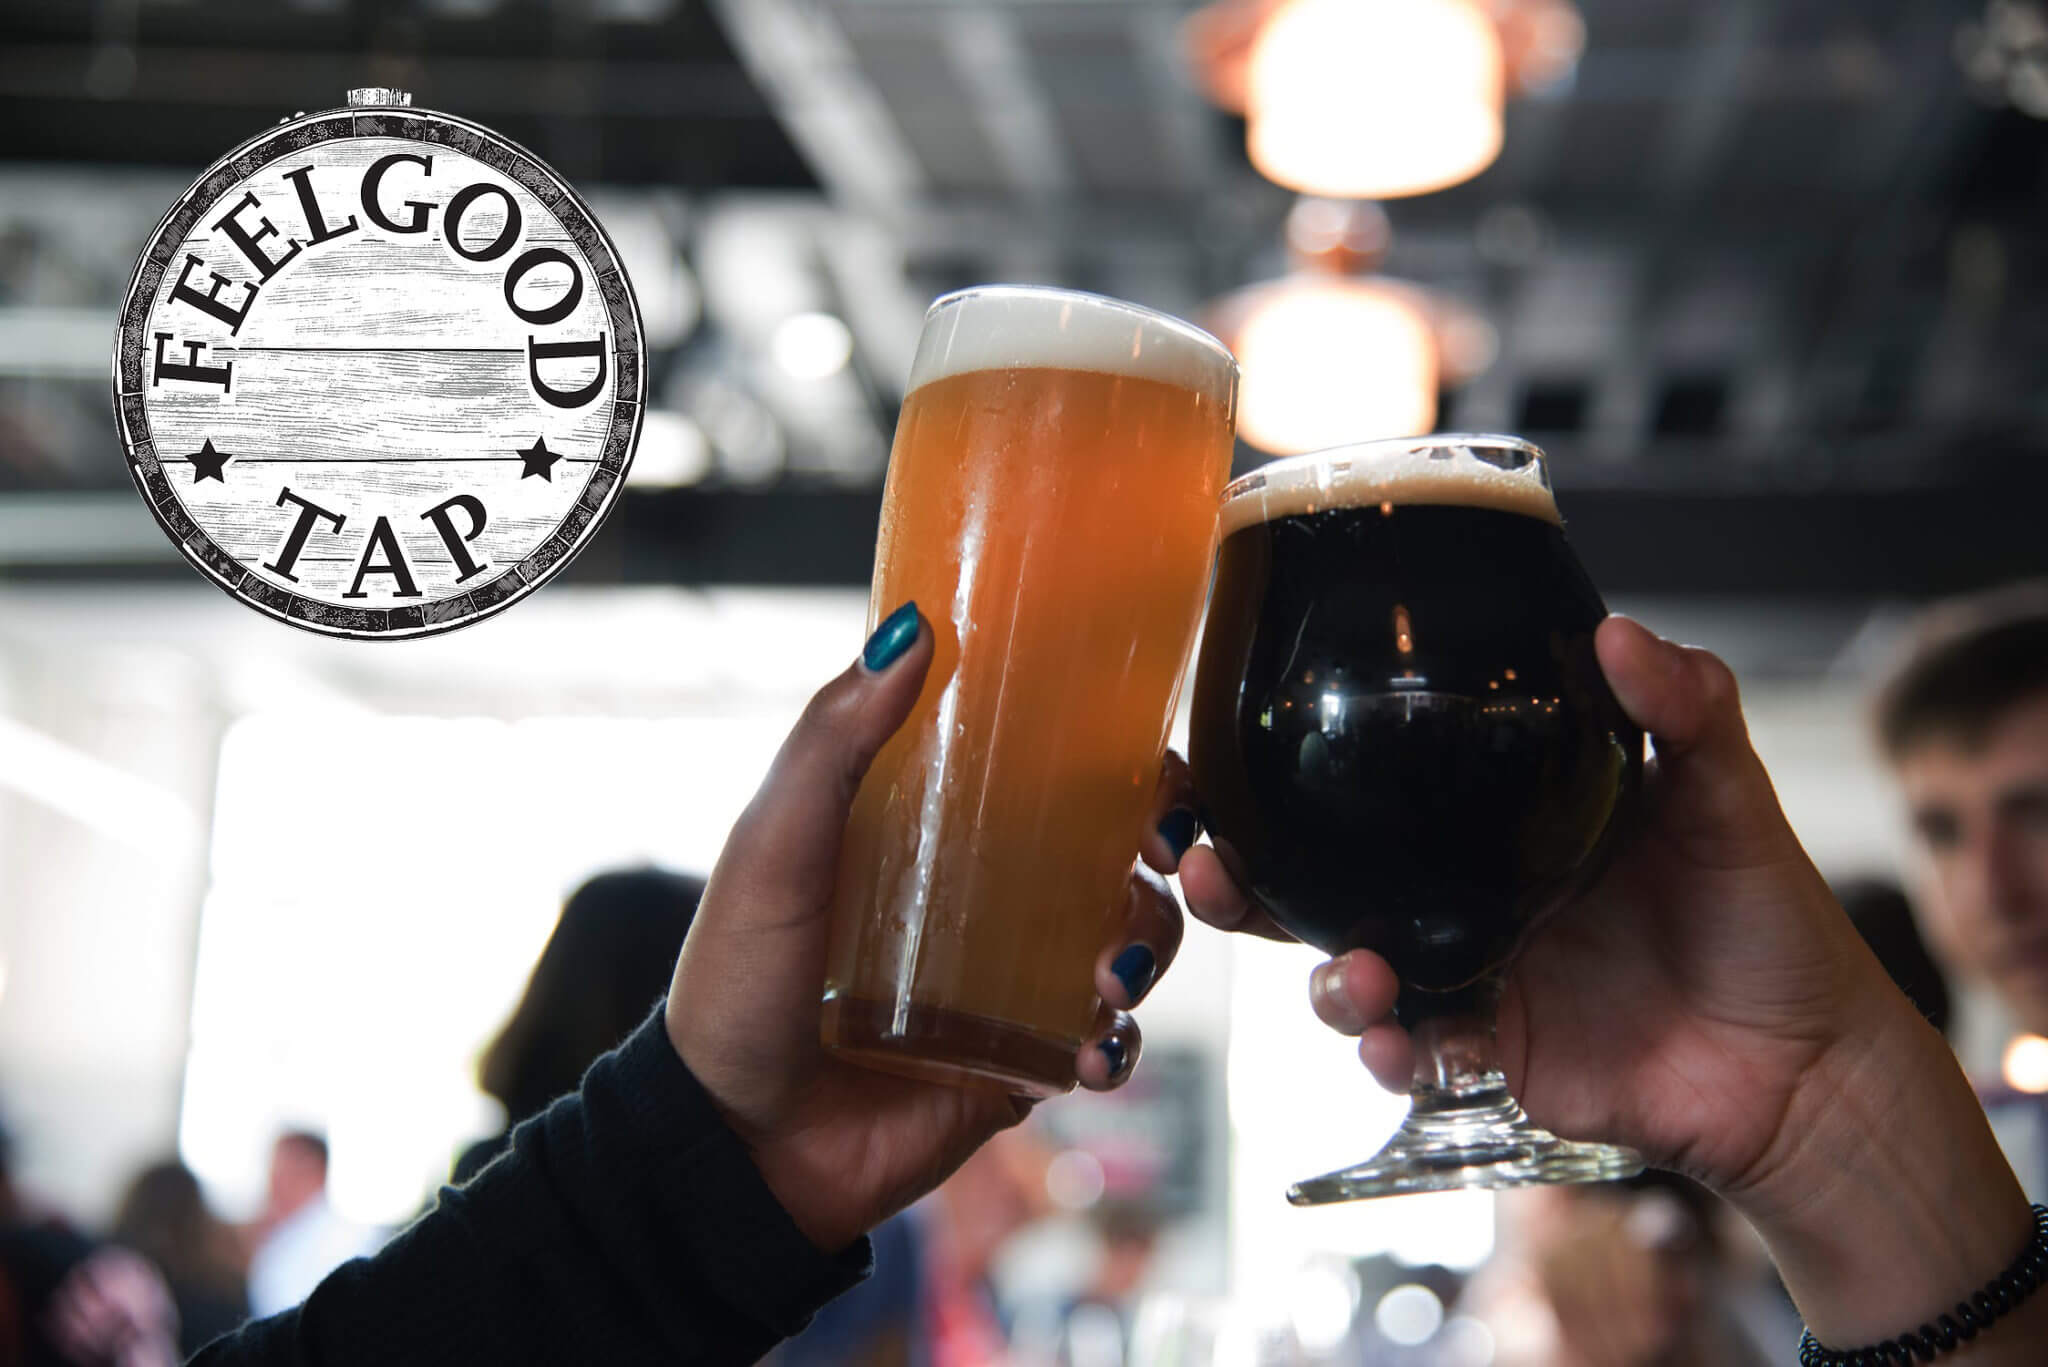 Feelgood Tap and Michigan Humane Society